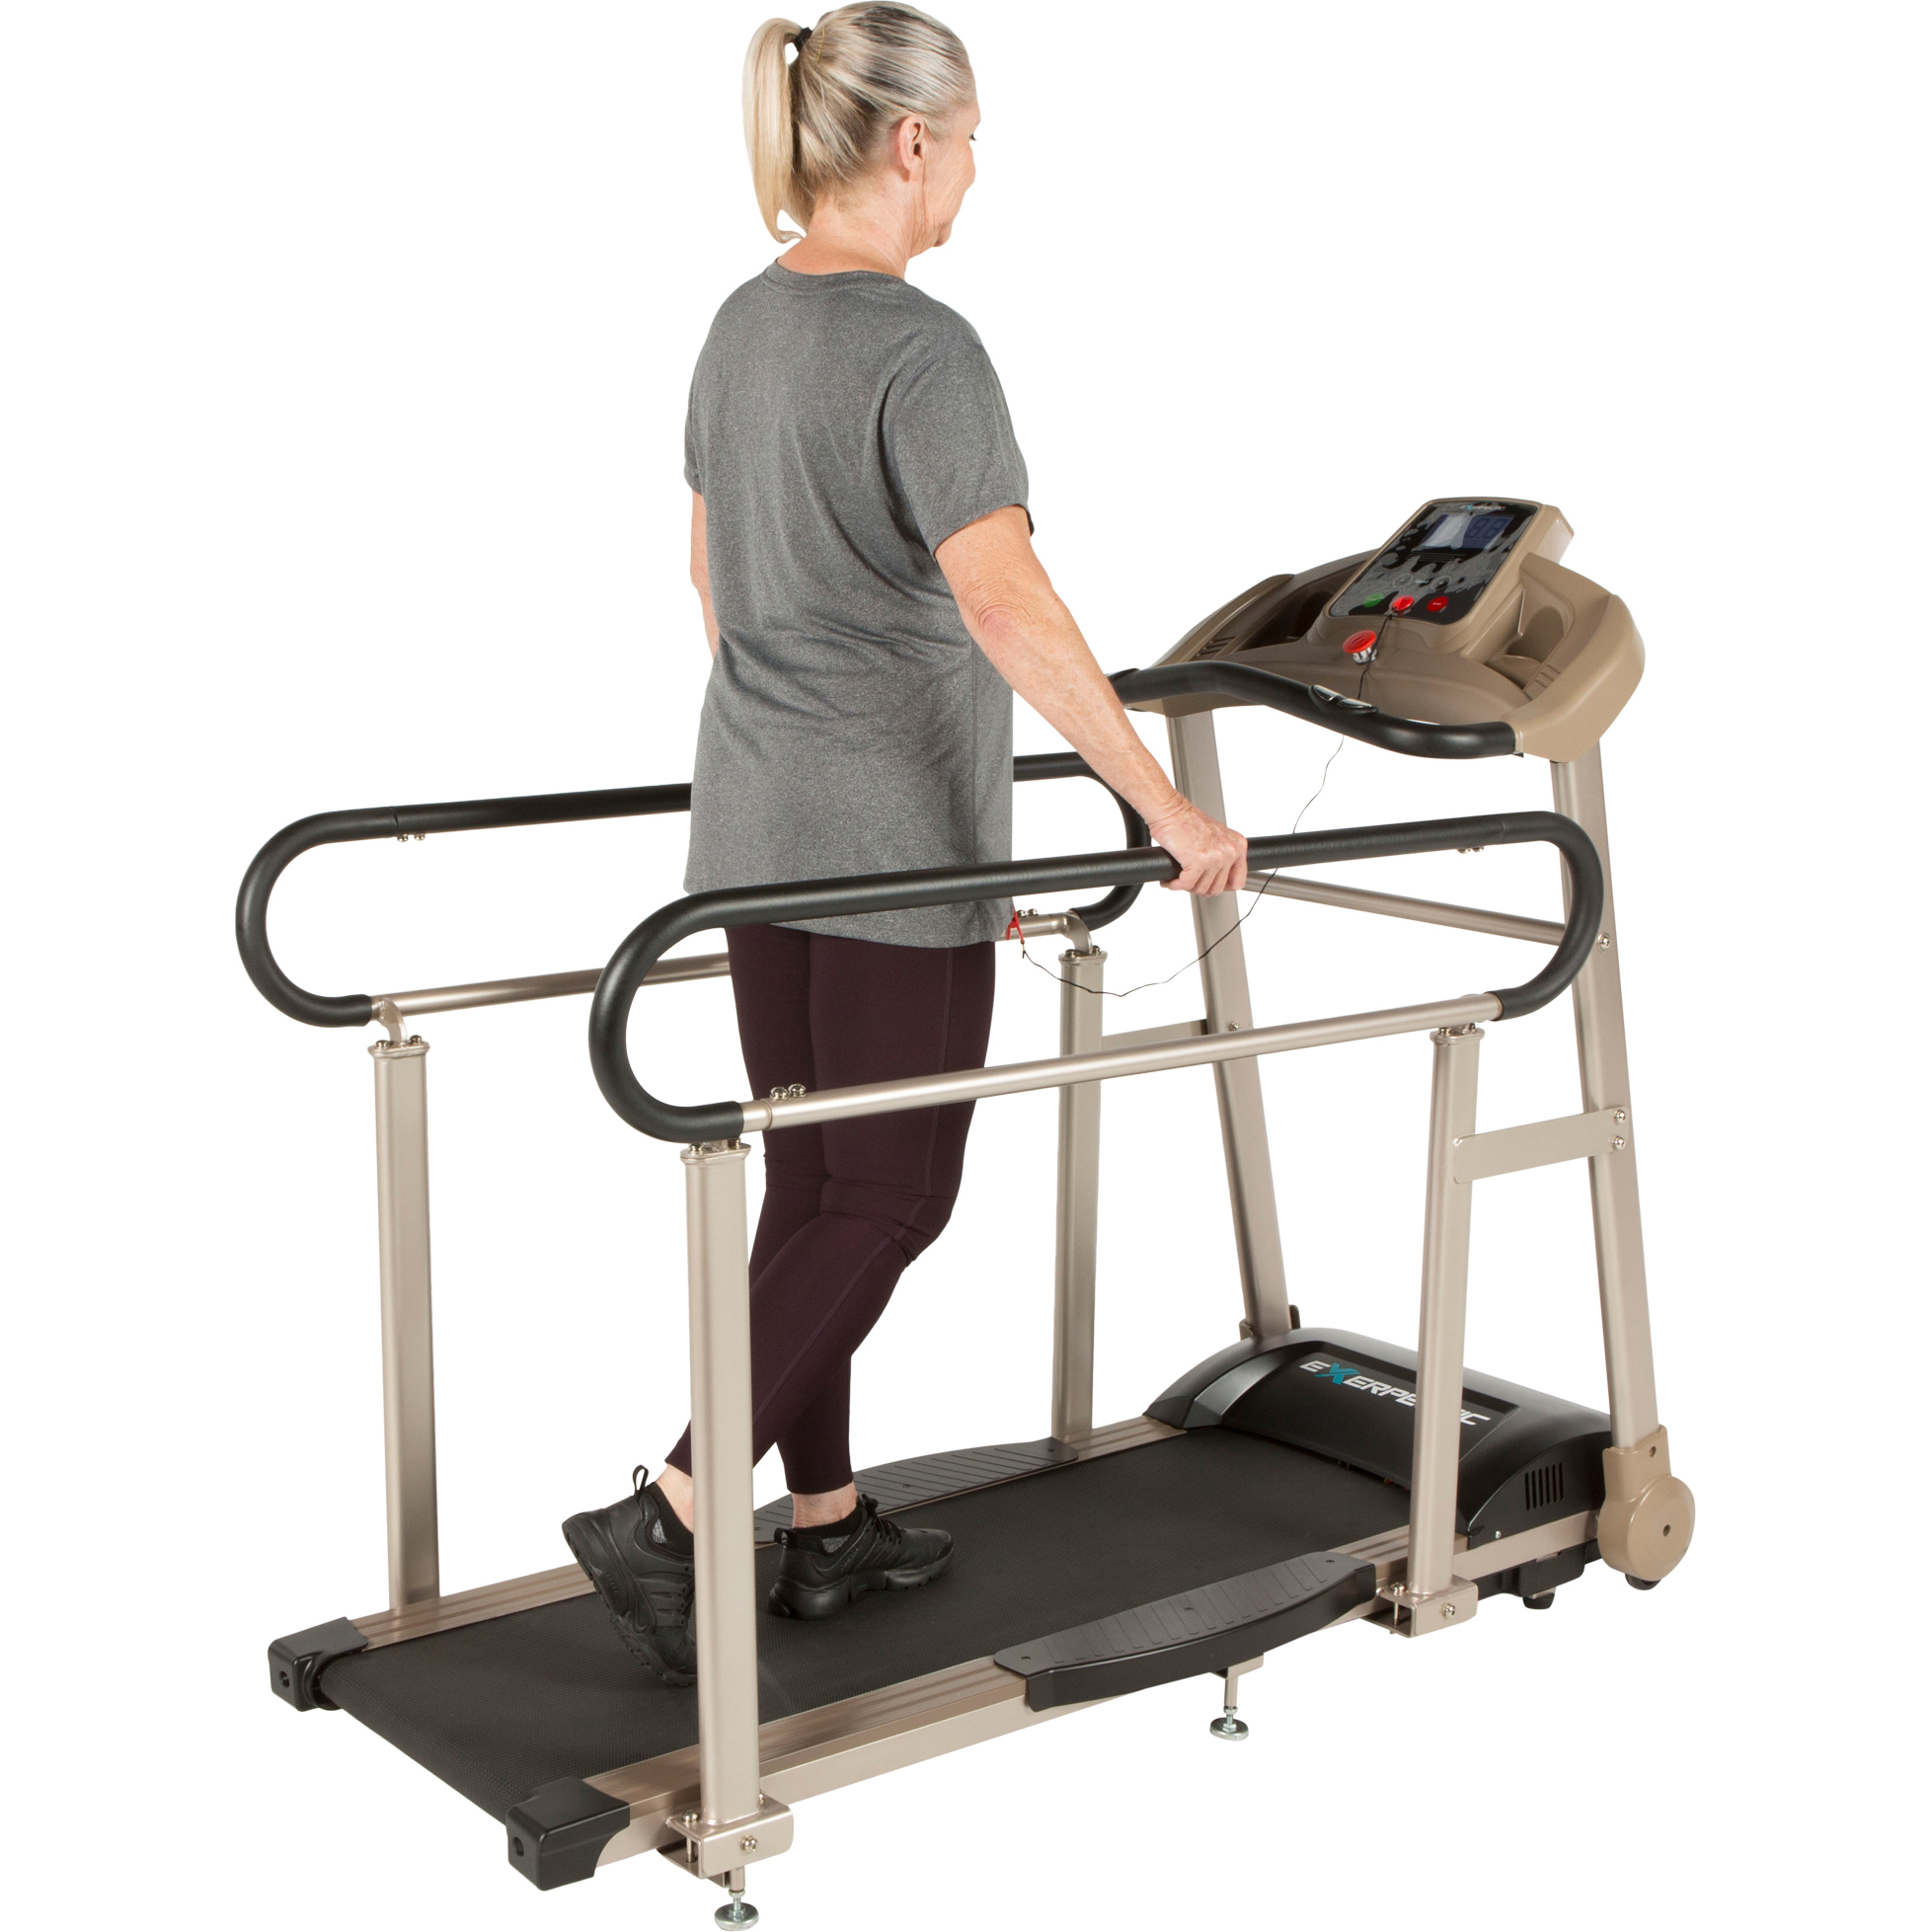 EXERPEUTIC TF2000 Recovery Senior Fitness Treadmill with Full Length Hand Rails & Heart Rate Monitor